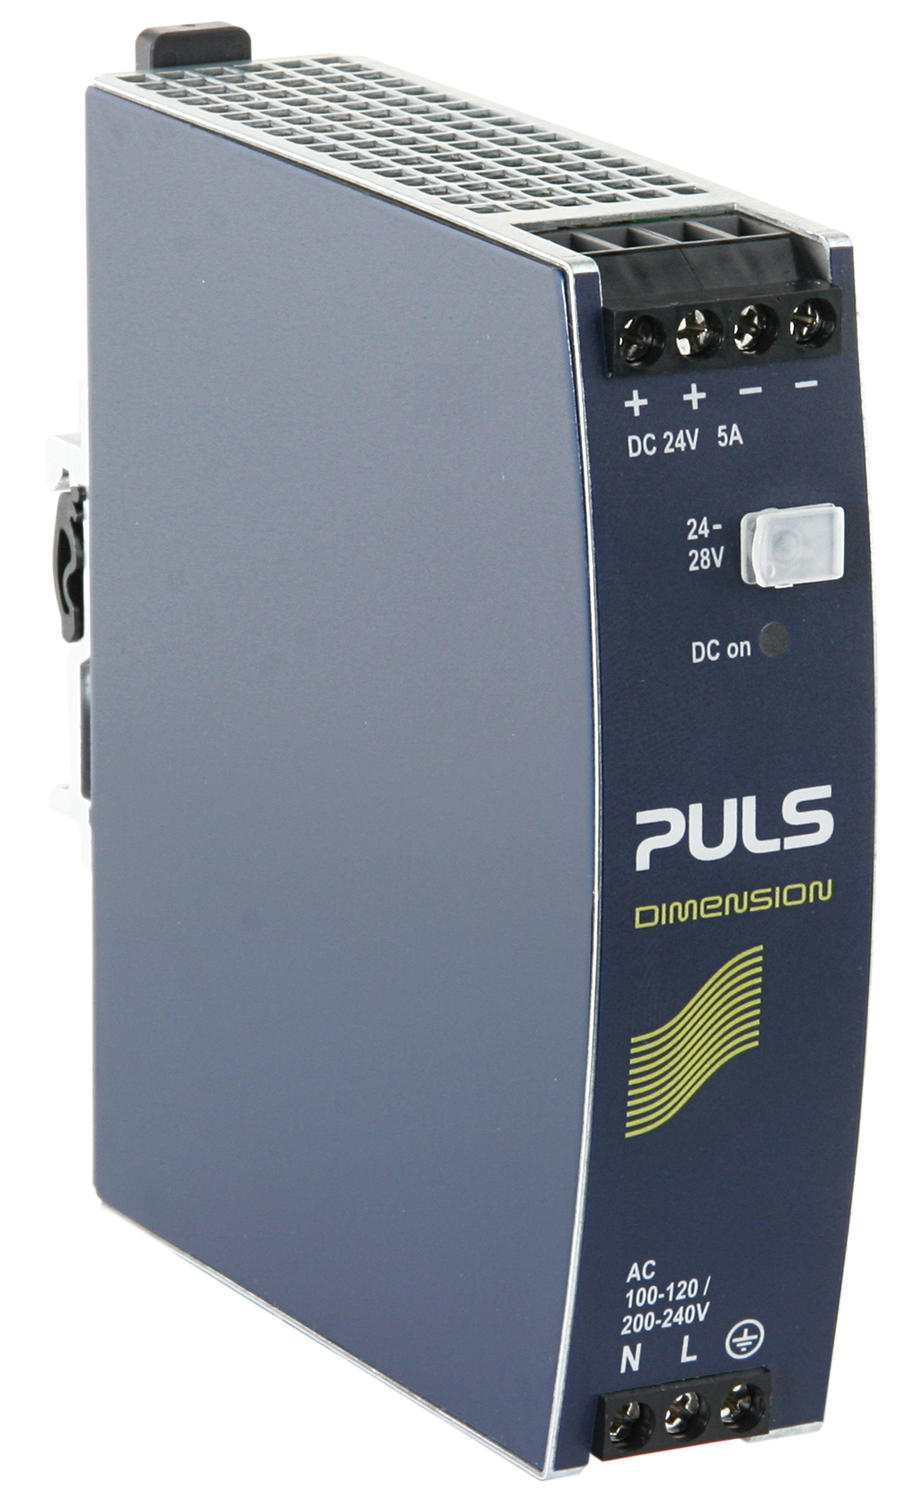 Dimension C power supply